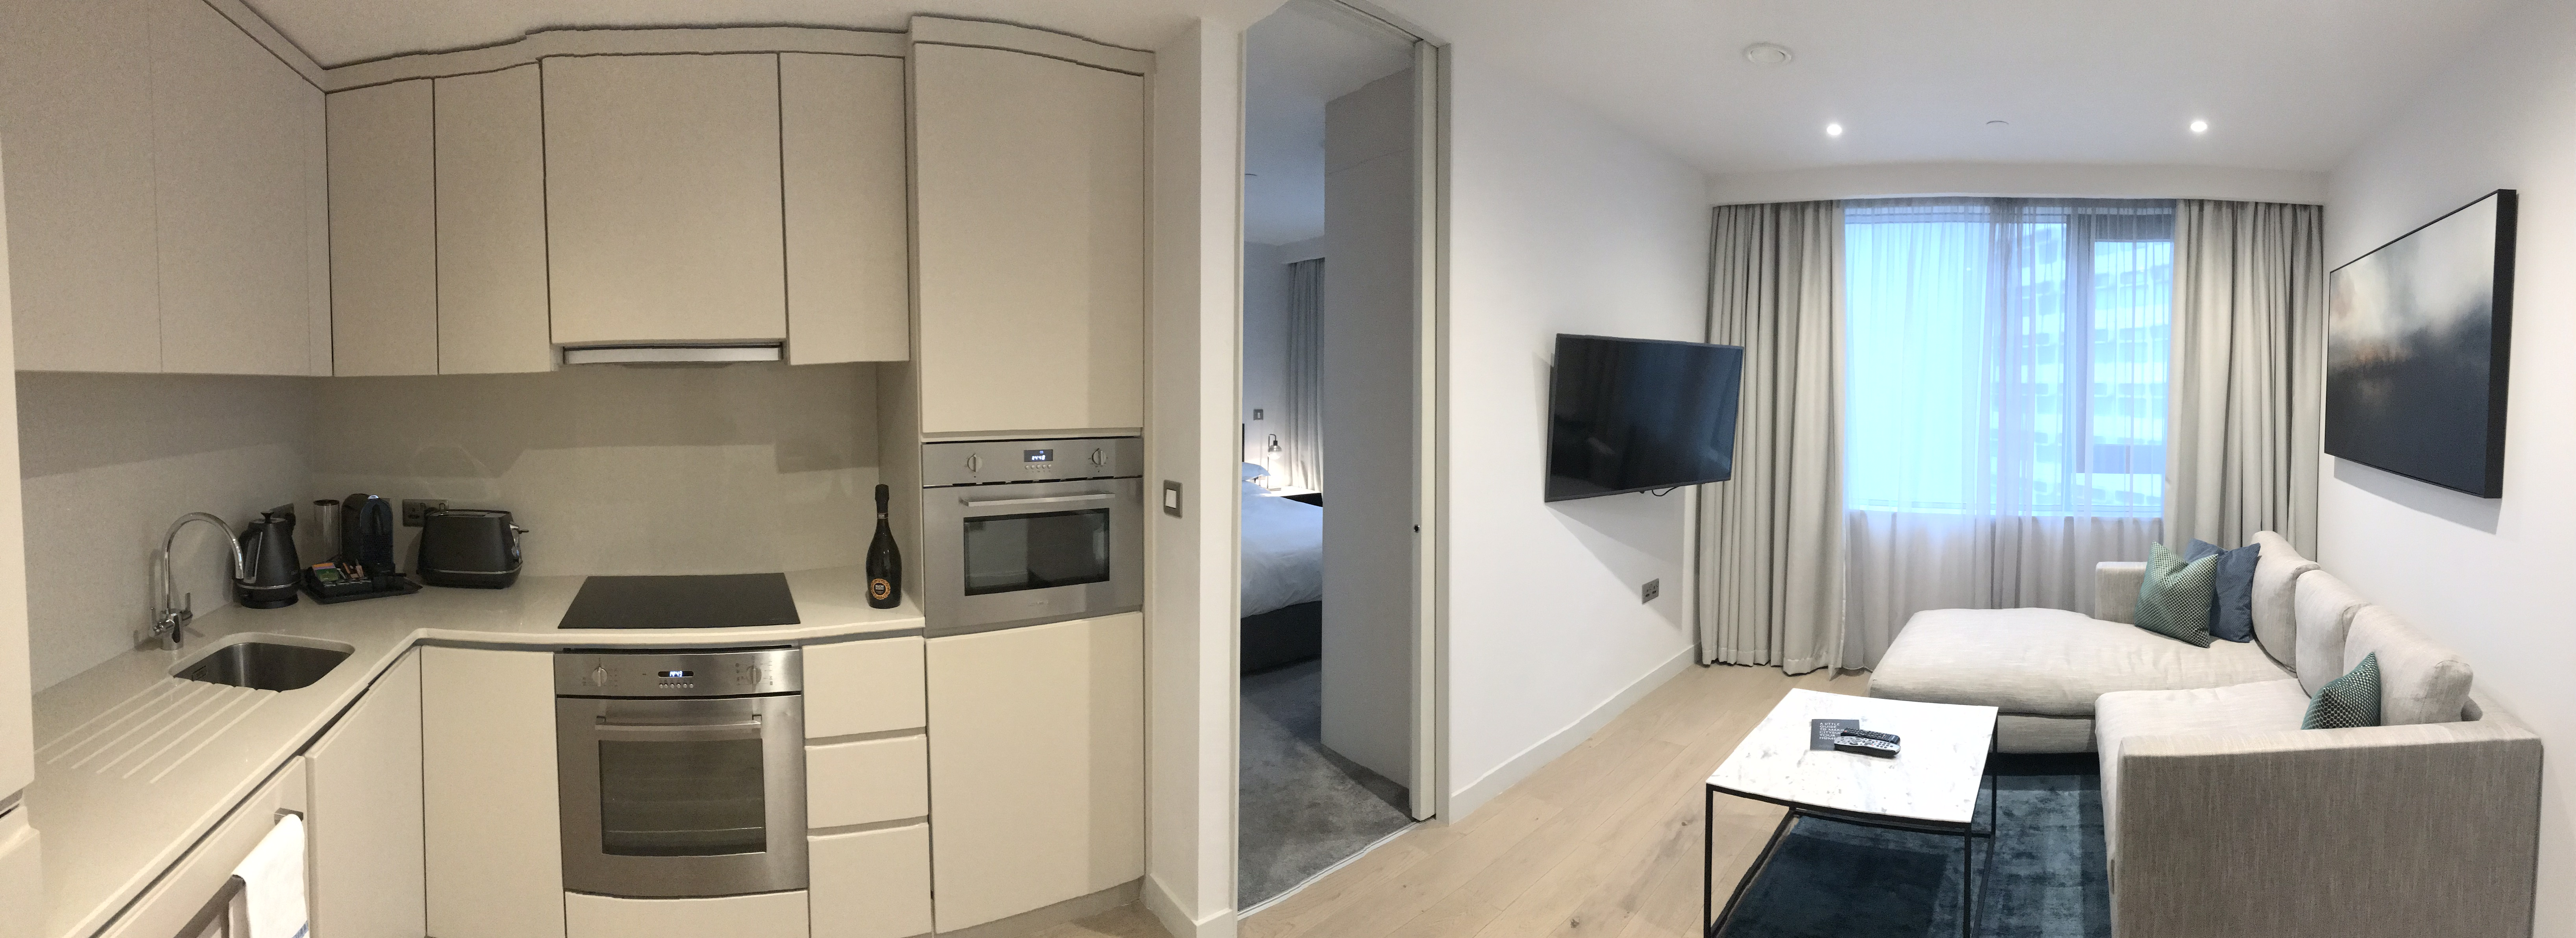 Panoramic Image Of One Bedroom Apartment (1)